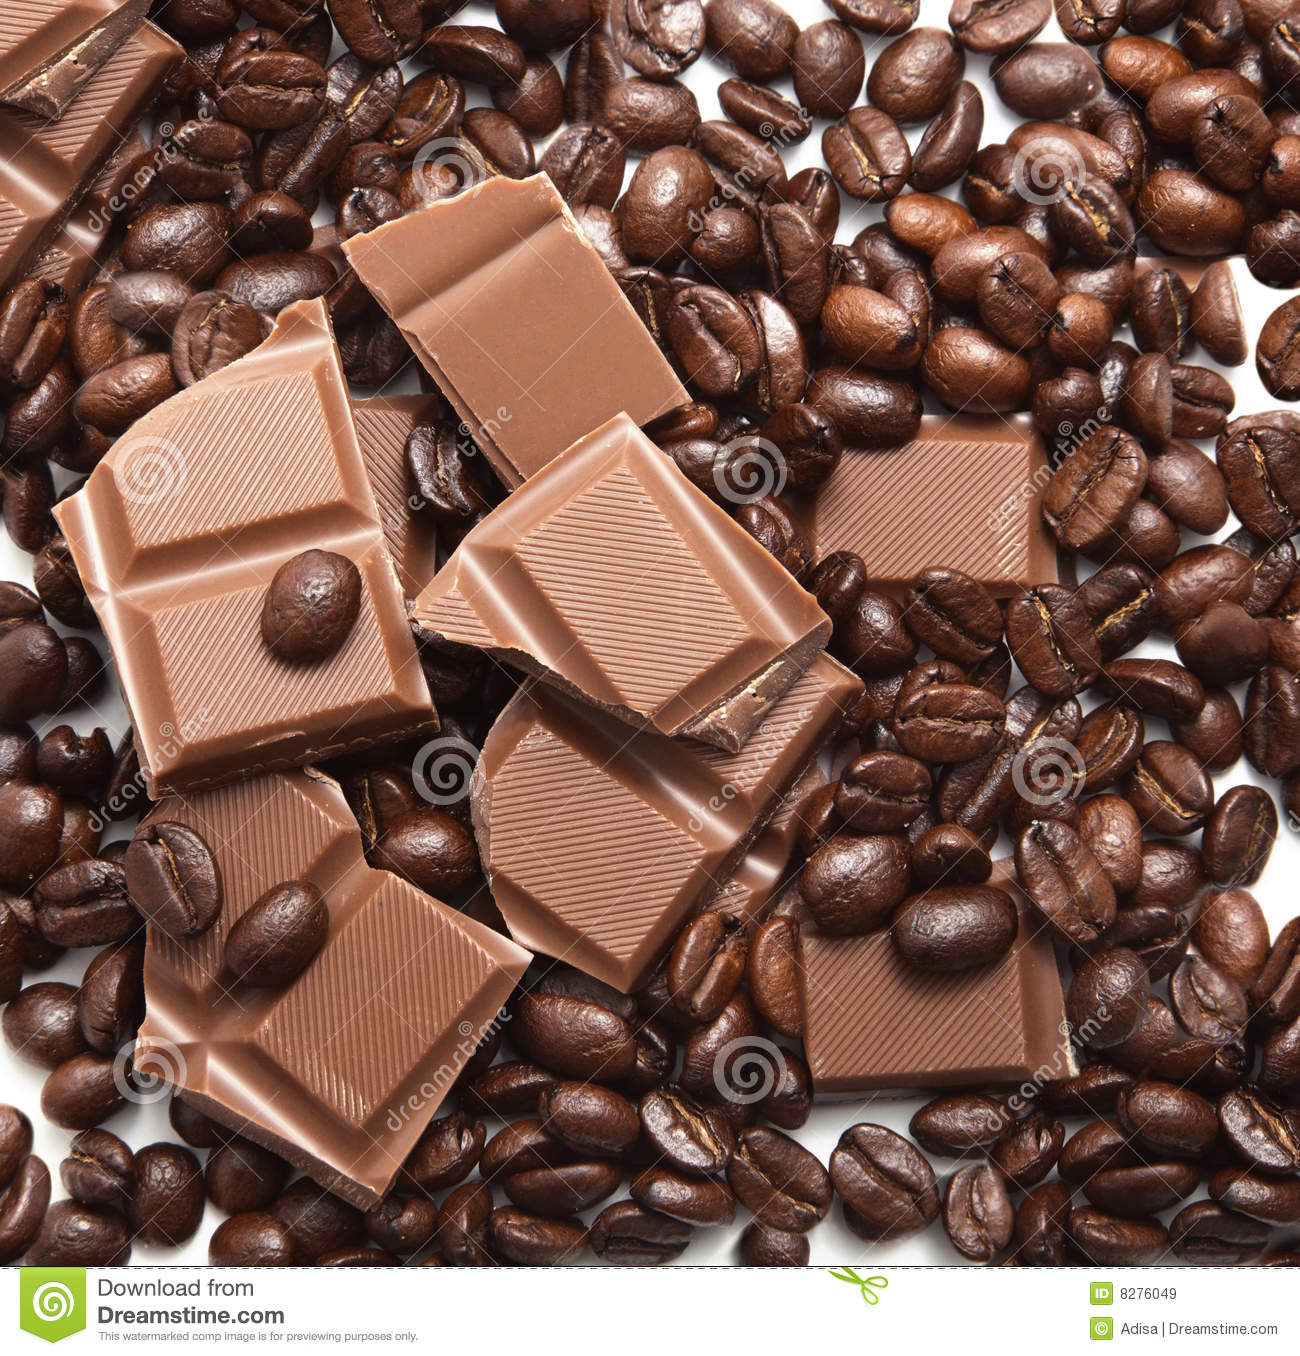 Chocolate And Coffee Beans Royalty Free Stock Images - Image: 8276049